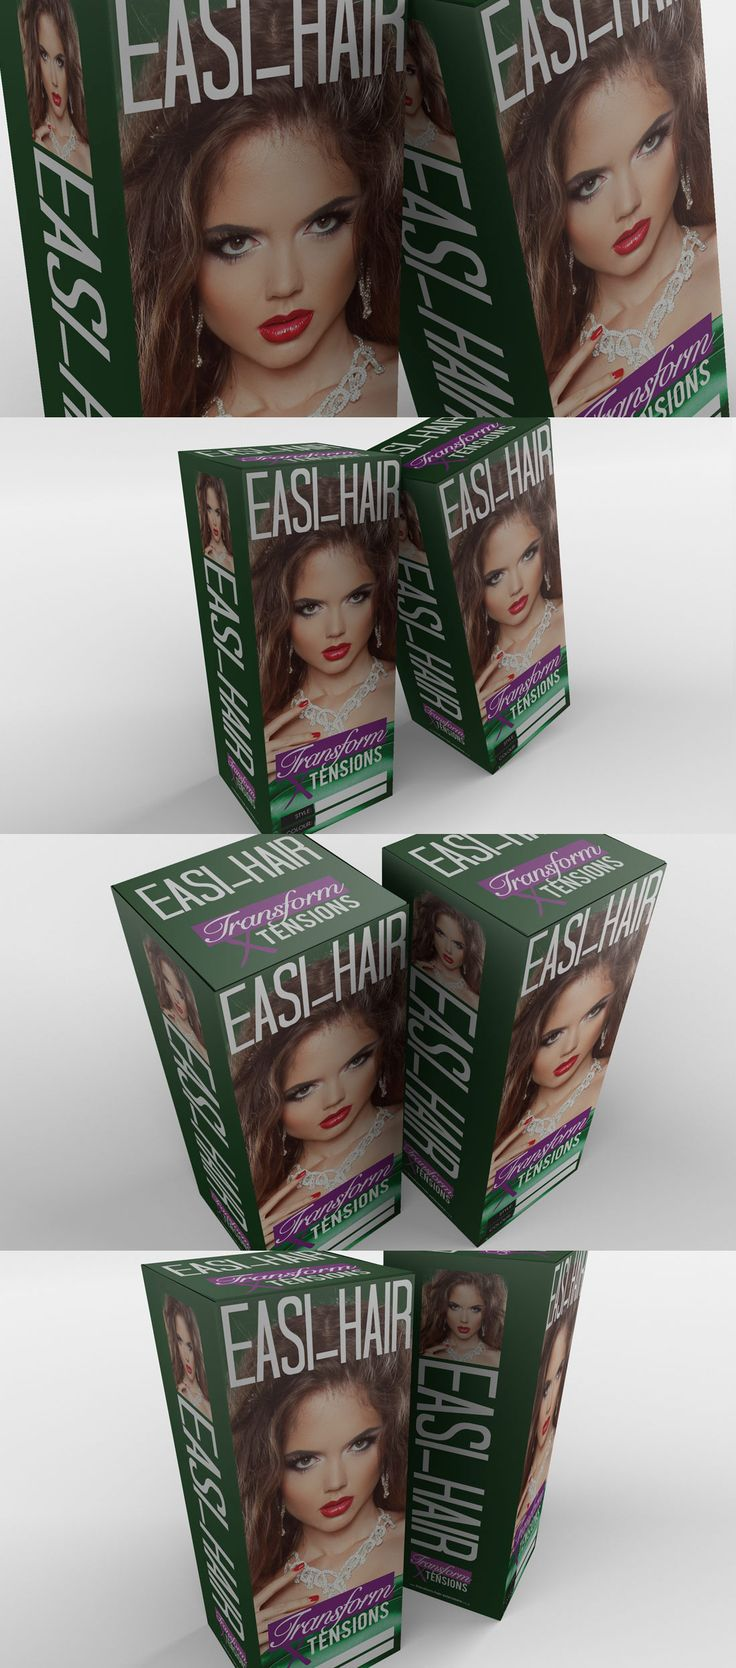 #Packaging design for Transform #HairExtensions variant brand Easi-Hair by freelance graphic designer Darren McChrystal. I created the packaging box from scratch and helped source stock imagery for inclusion on the box as well as designing a bespoke logo design for their startup hair extensions brand.